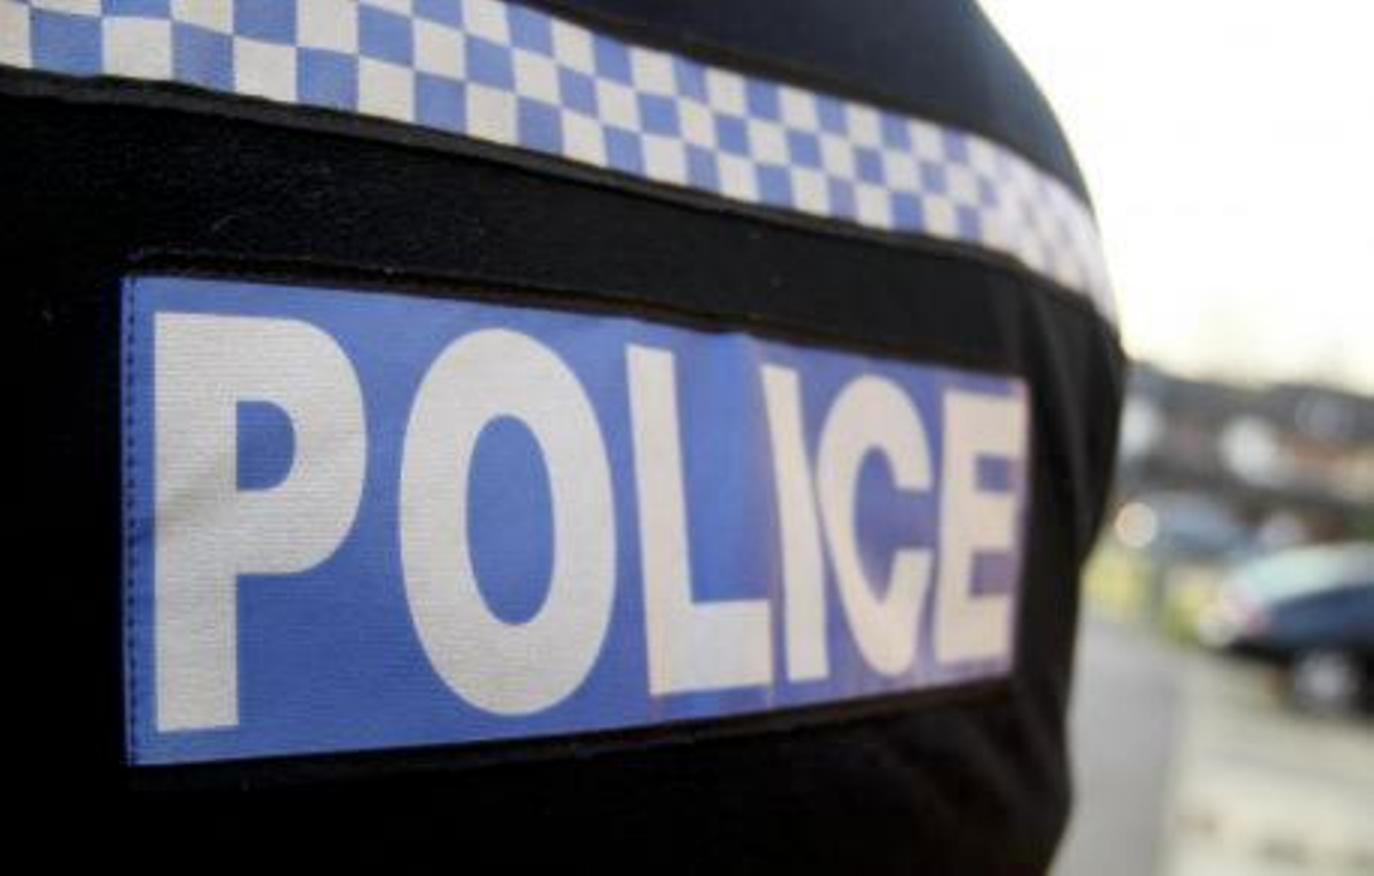 Police hunt man who assaulted victim with length of wood